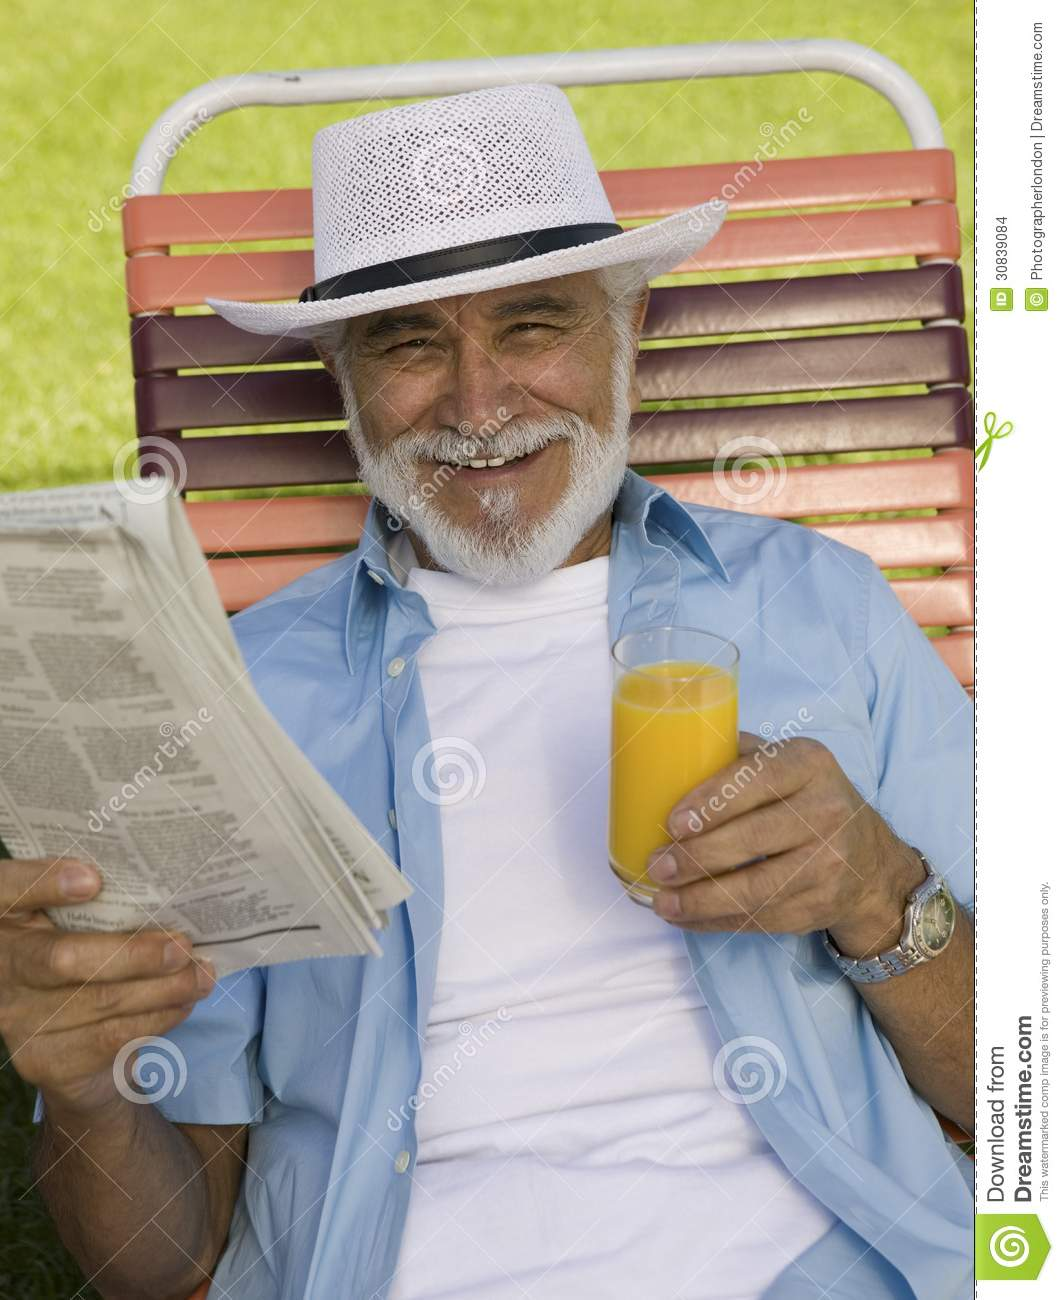 Outdoor Patio Furniture For Seniors: Senior Man Sitting On Lawn Chair Holding Newspaper And